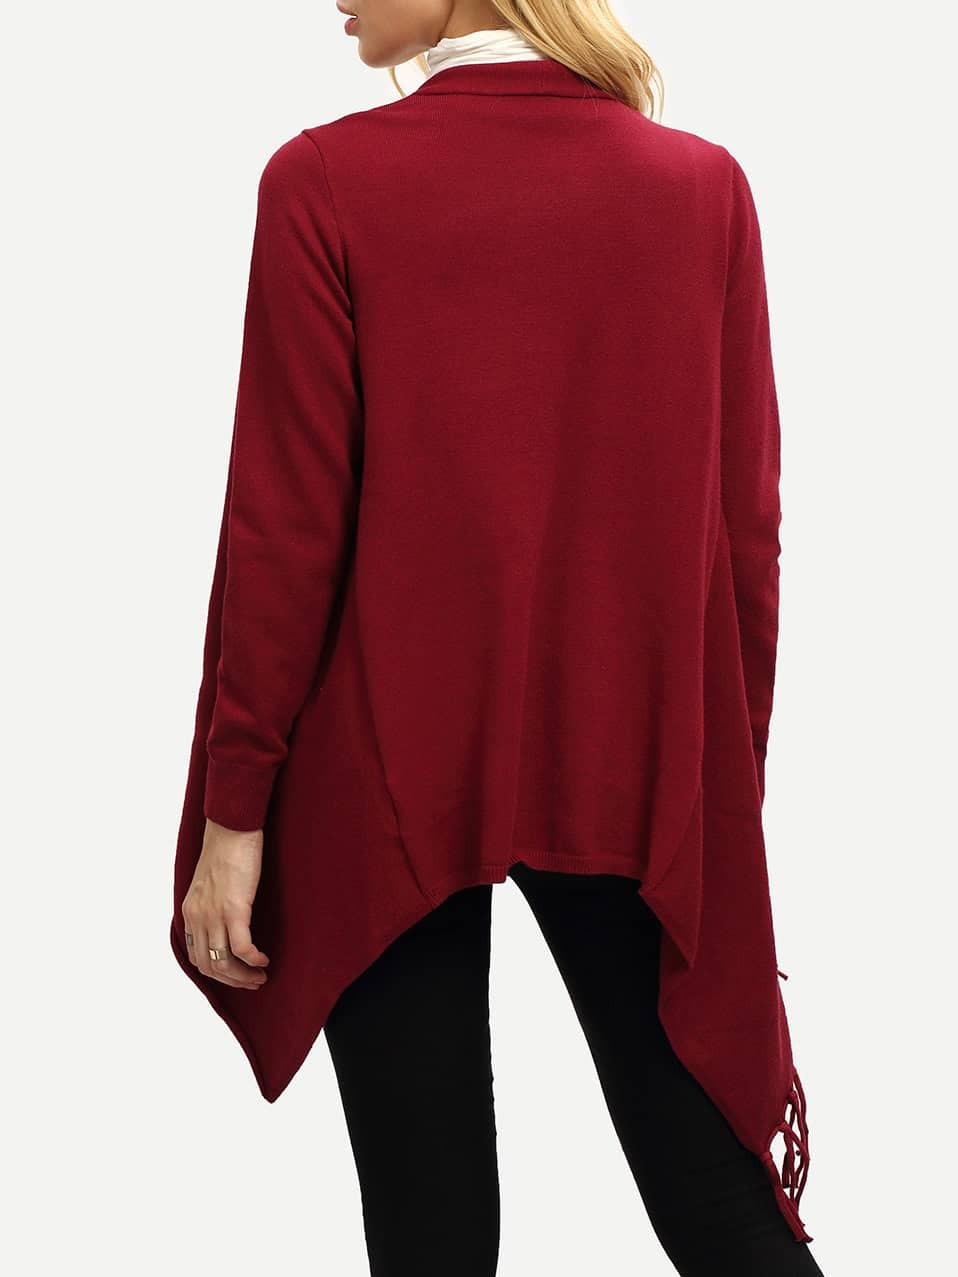 Wine Red Open Front Hanky Hem Fringe Sweater -SheIn(Sheinside)